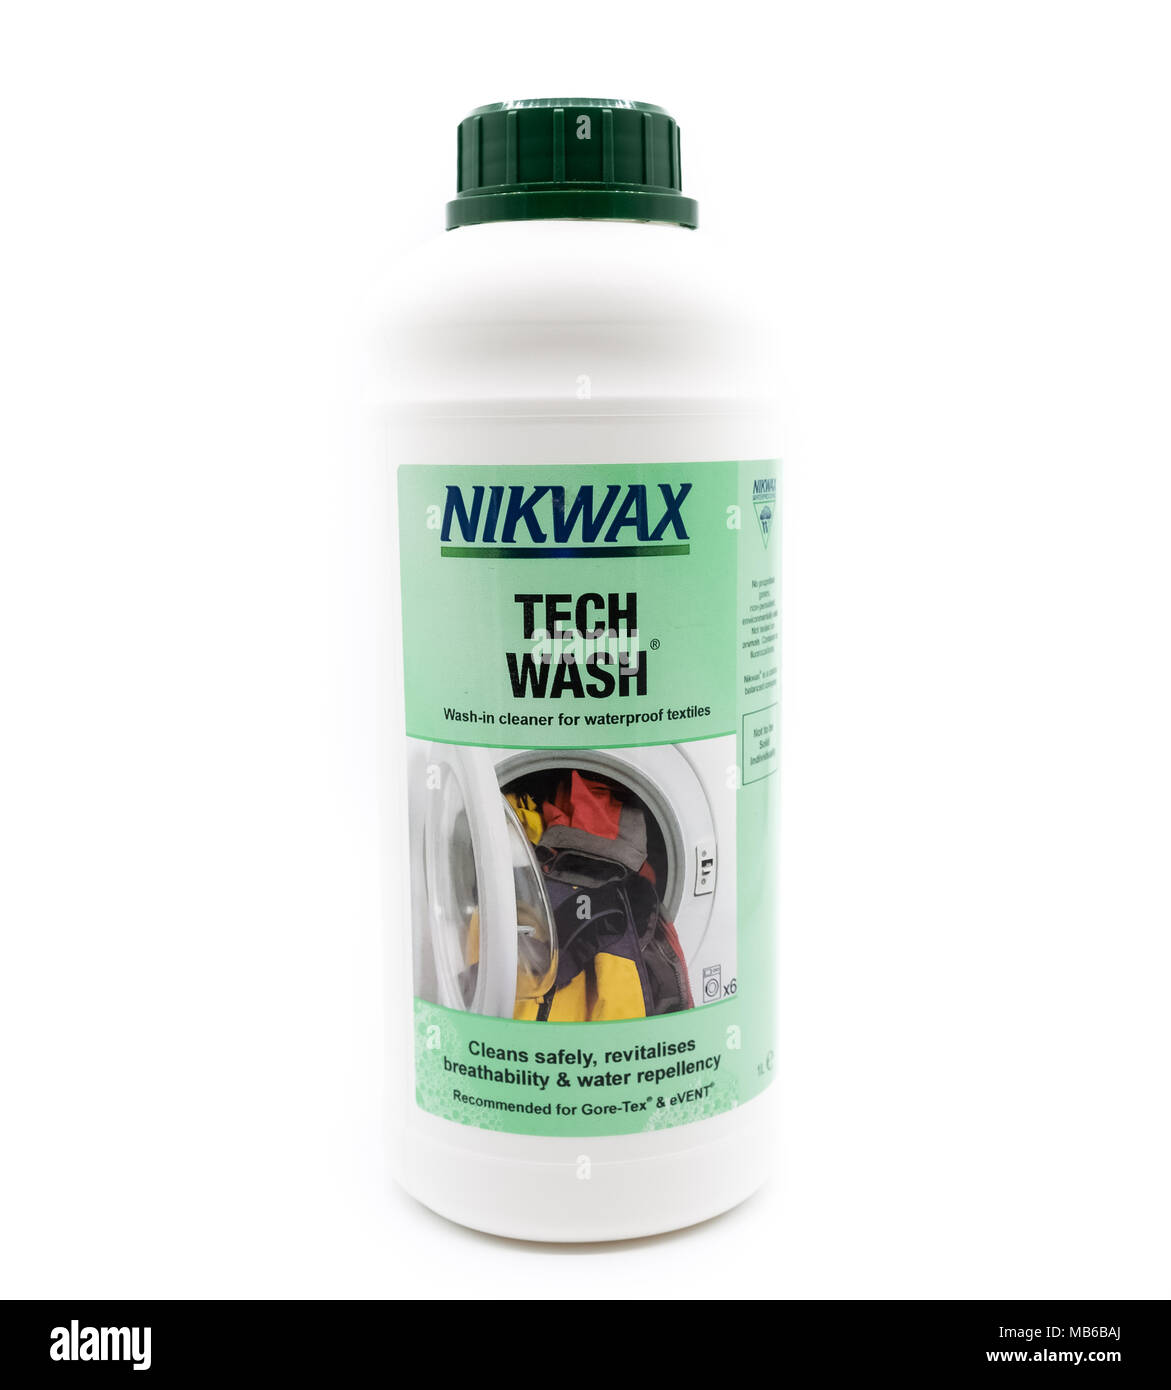 Largs, Scotland, UK - April 06, 2018: NikWax Tech Prewash in Recyclable Plastic Bottle and in line with recent UK eco initiatives - Stock Image